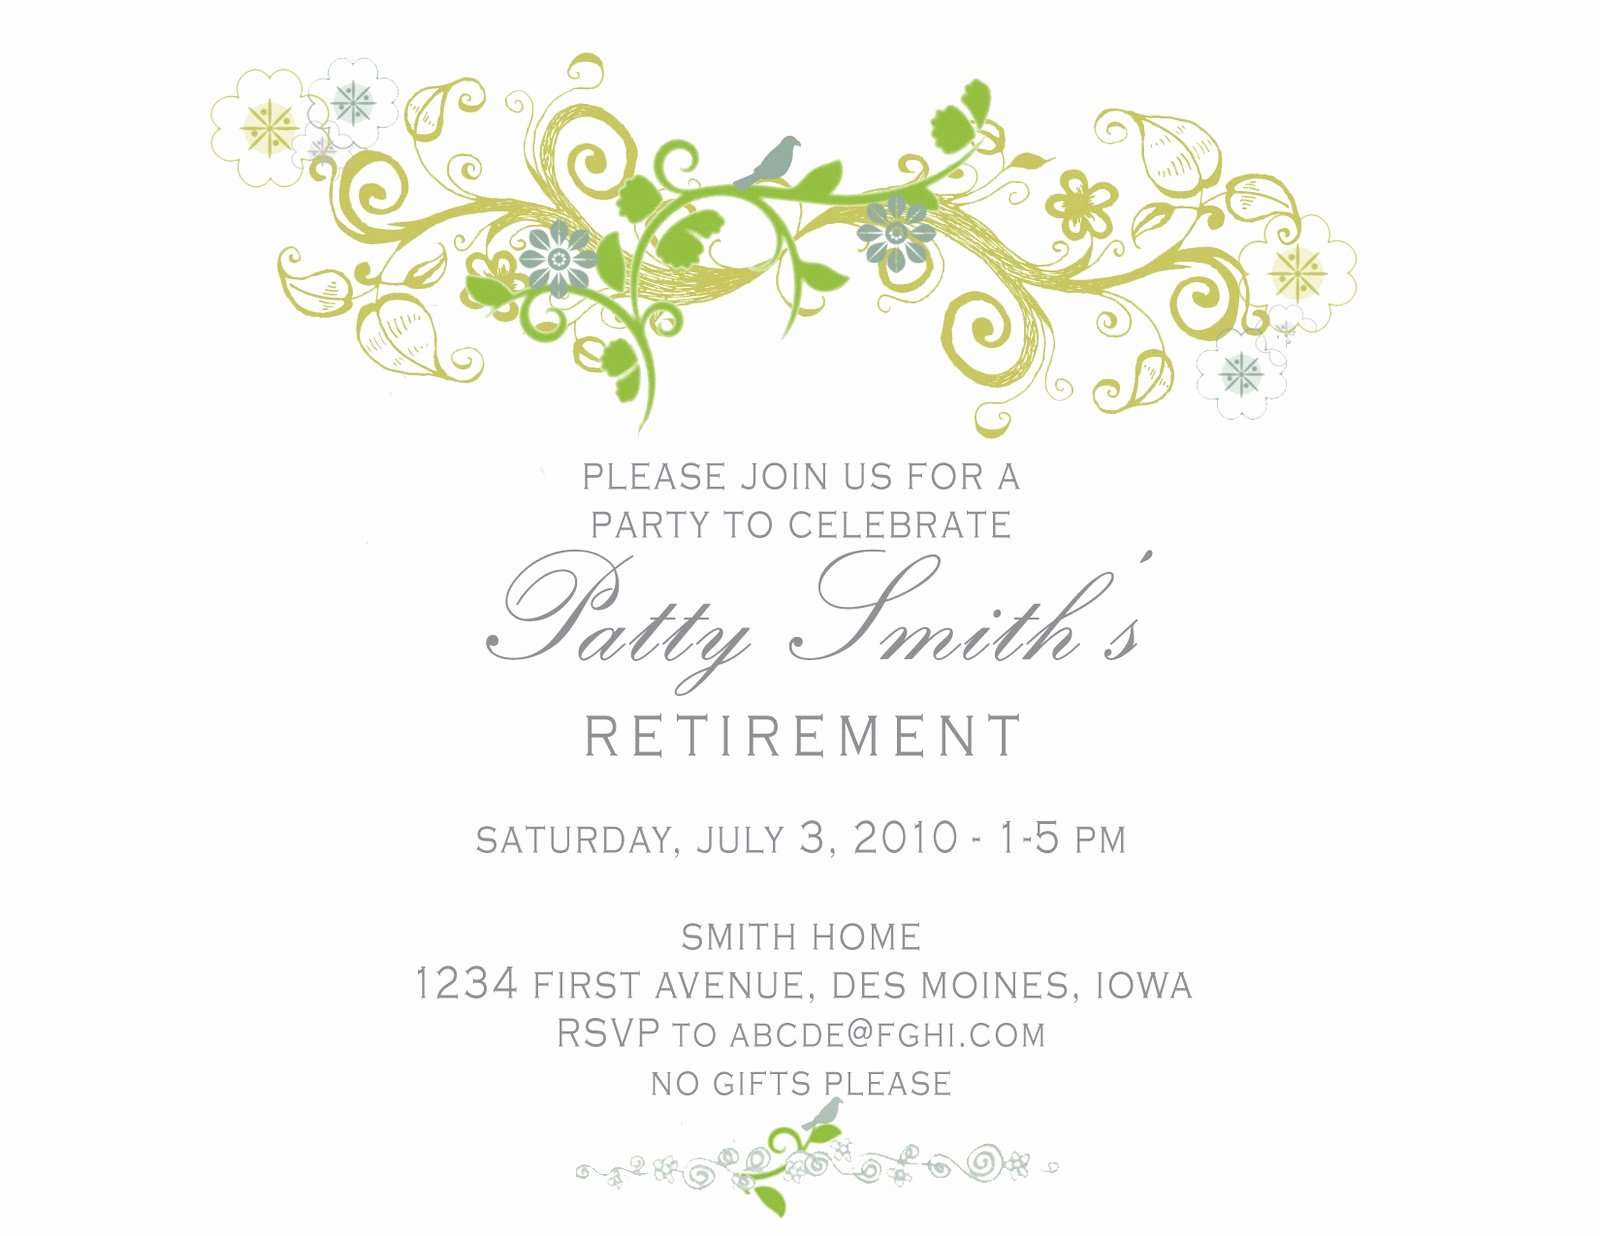 Retirement Party Invites Template Awesome Idesign A Retirement Party Invitation